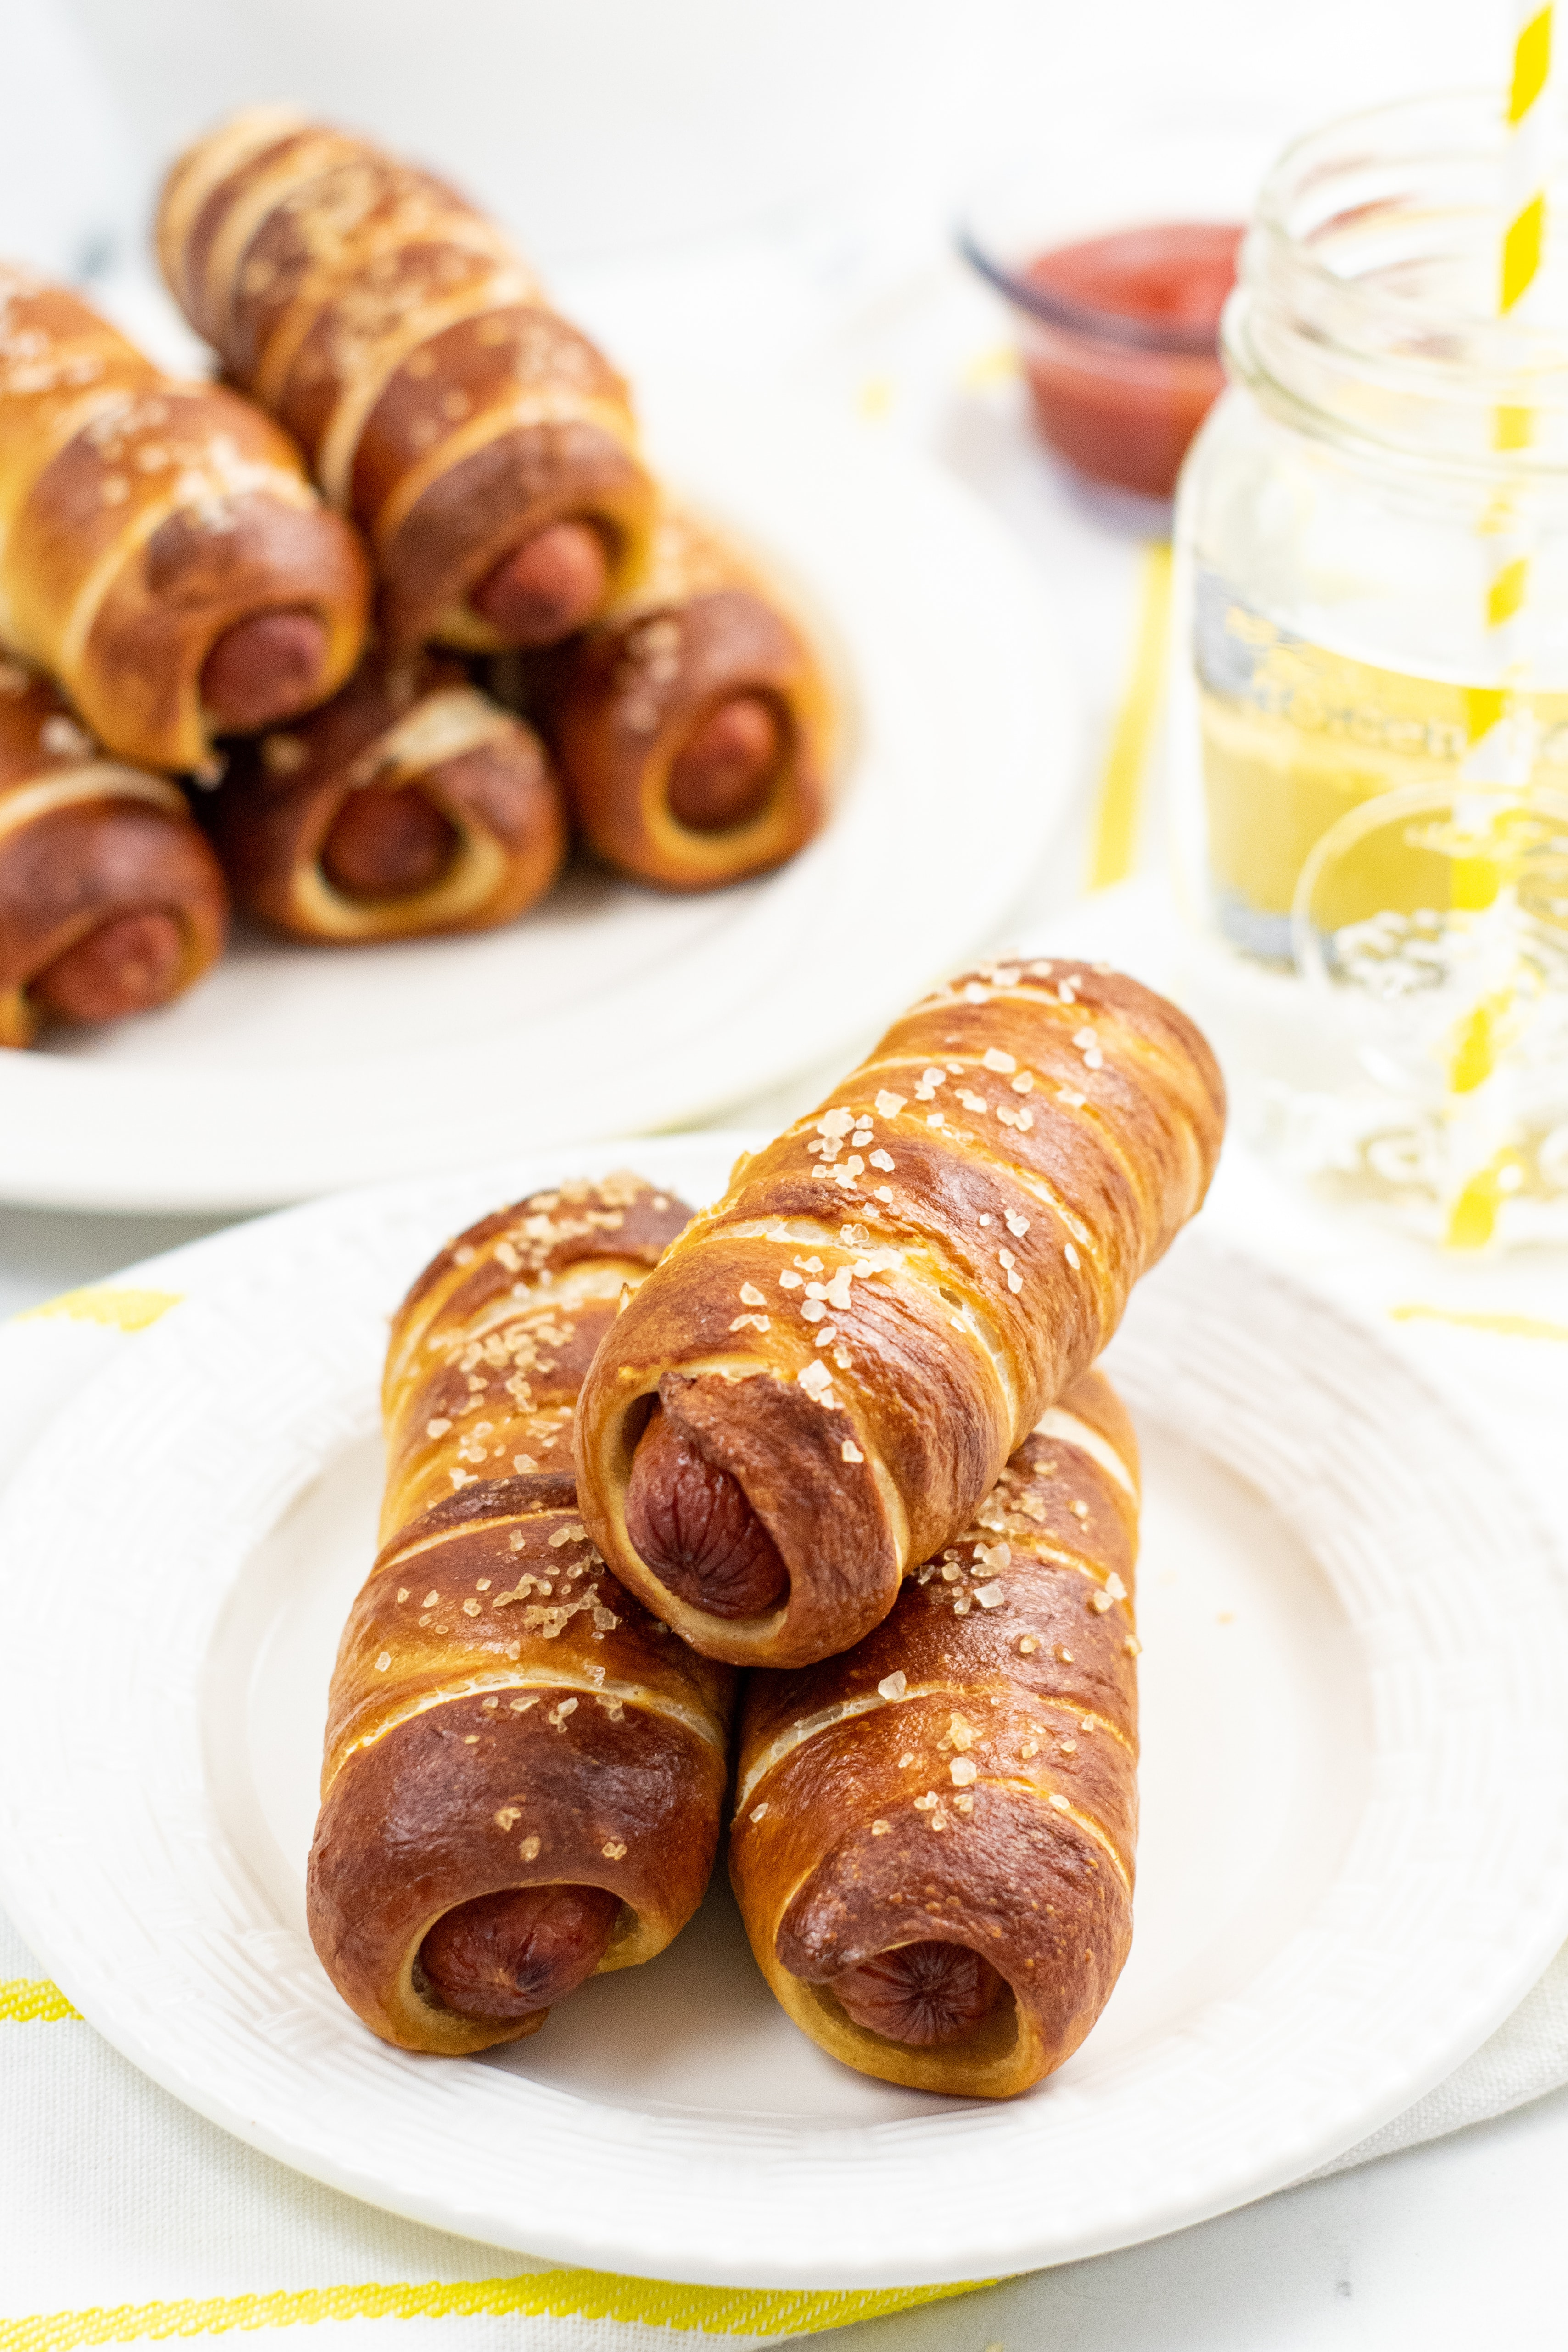 Pretzel dogs on a white plate